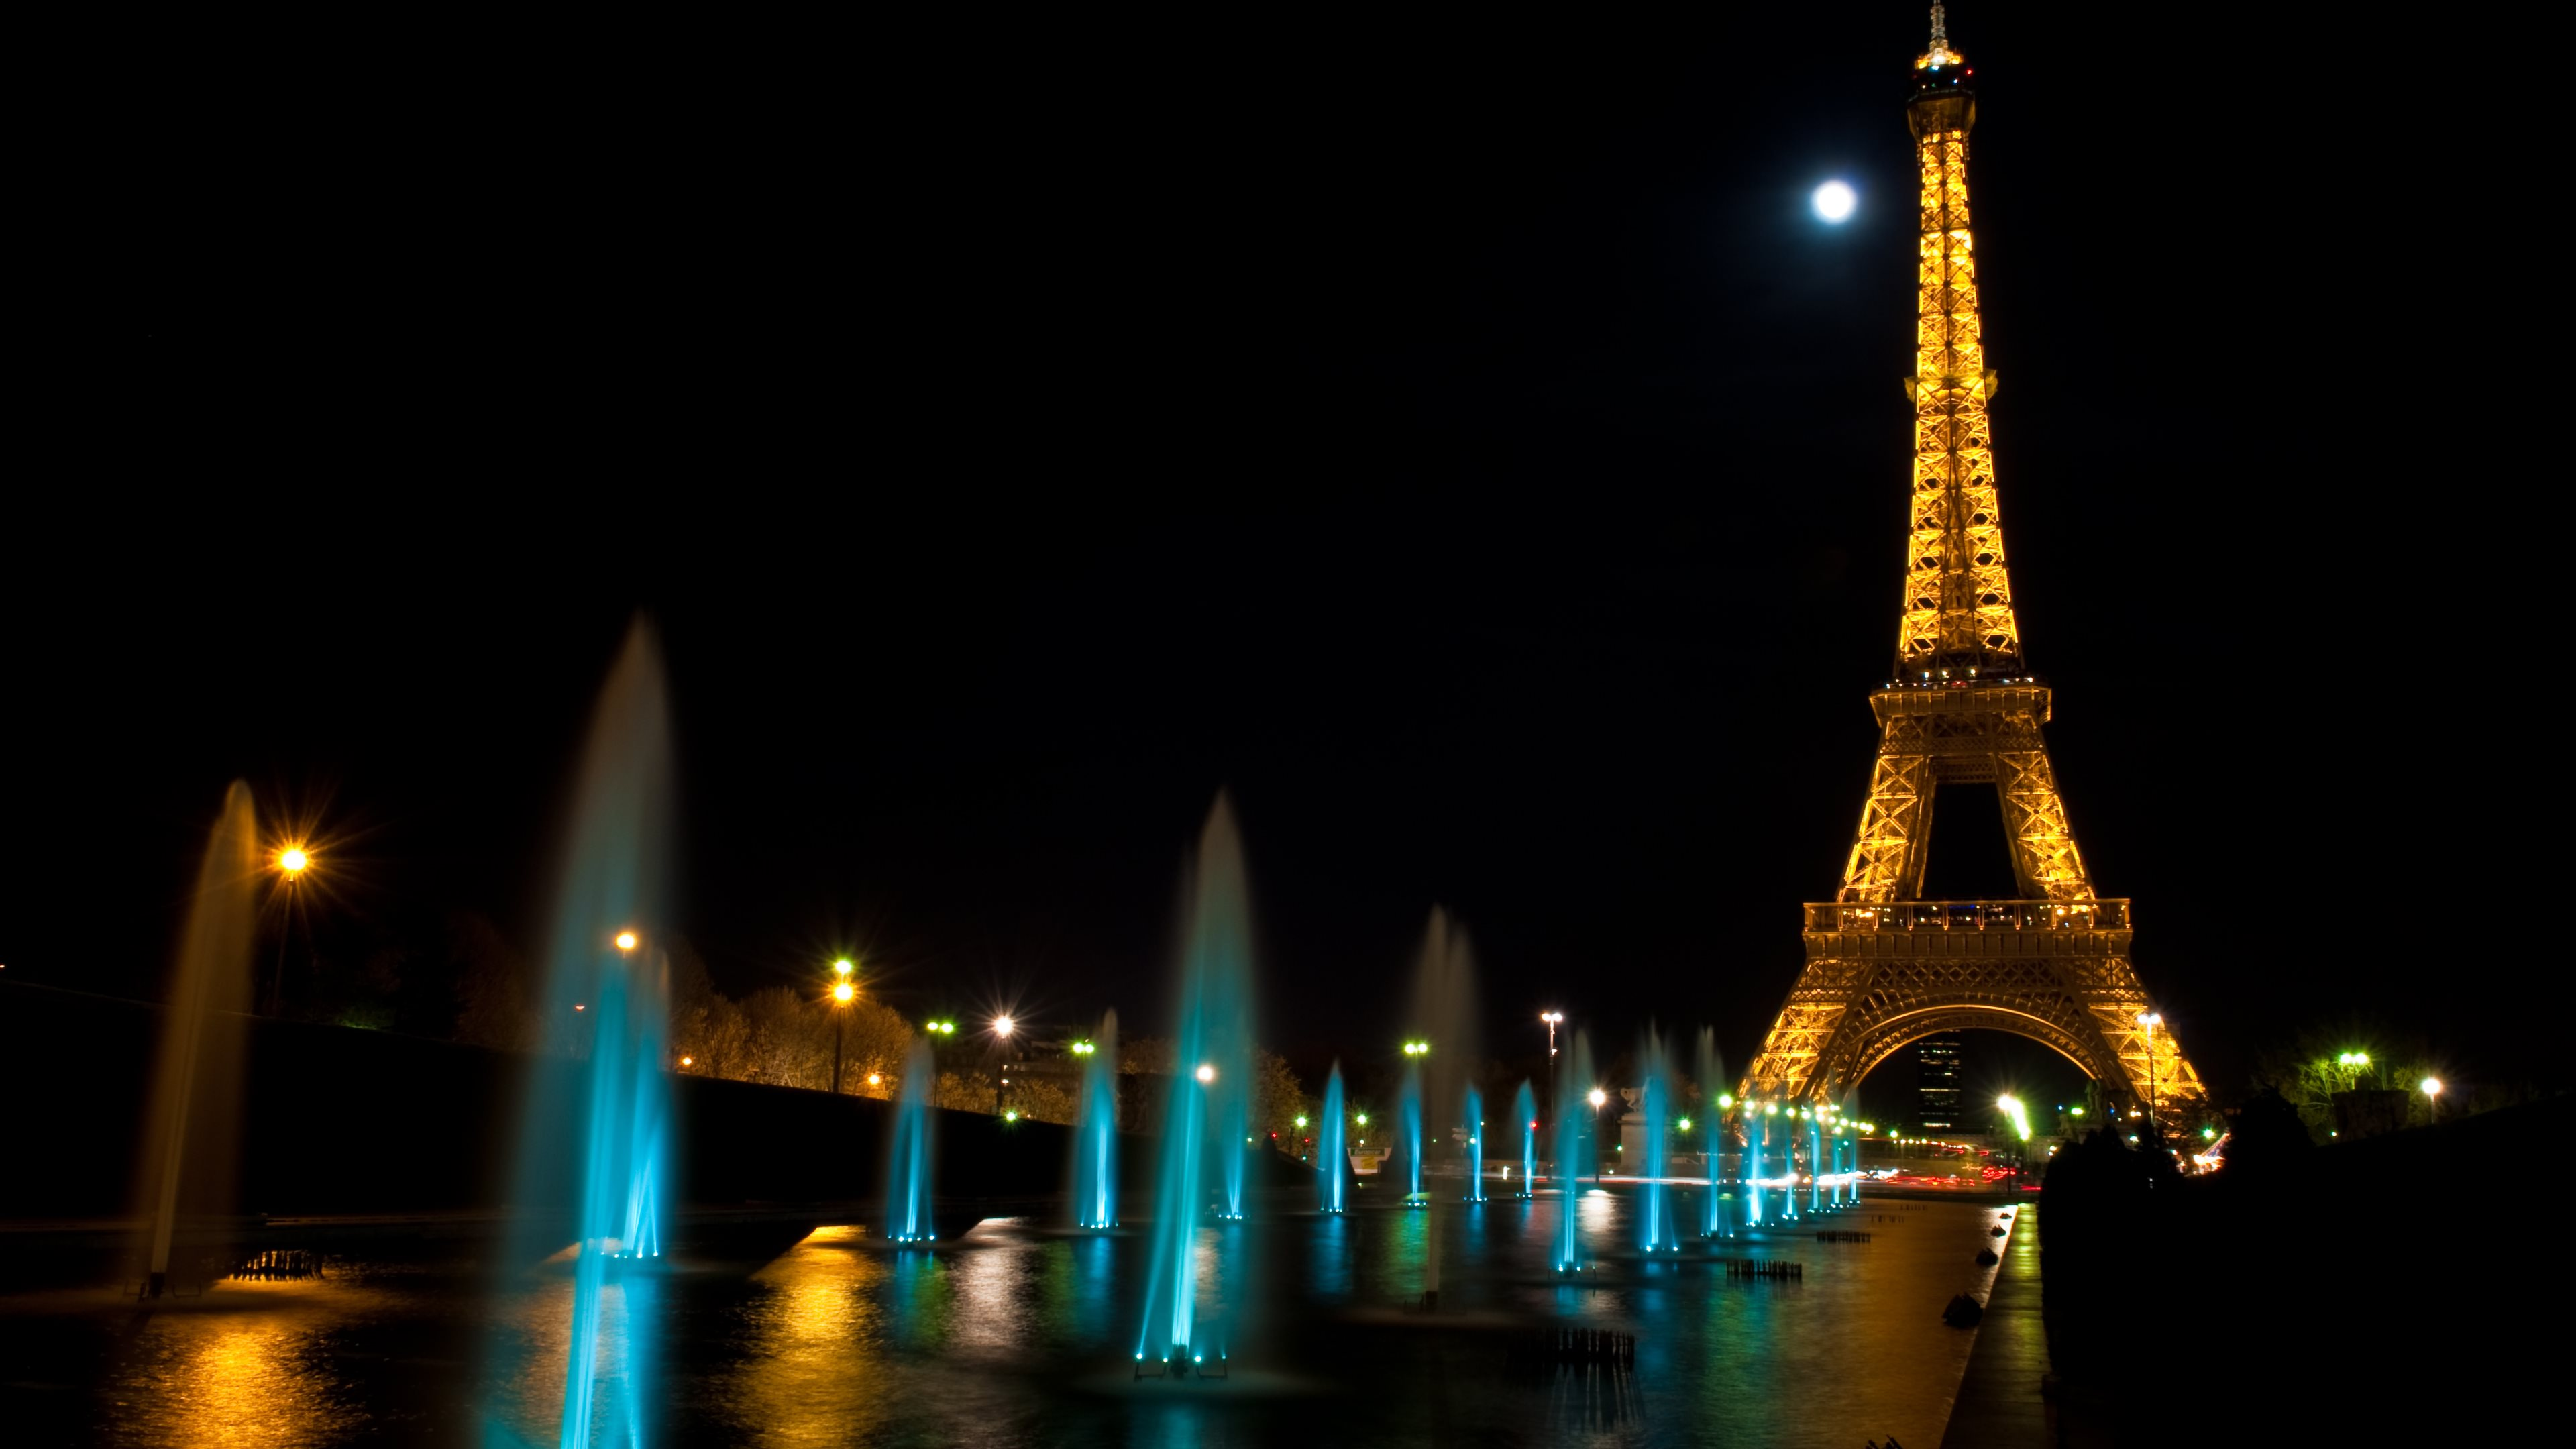 4k Eiffel Tower Wallpapers High Quality Download Free